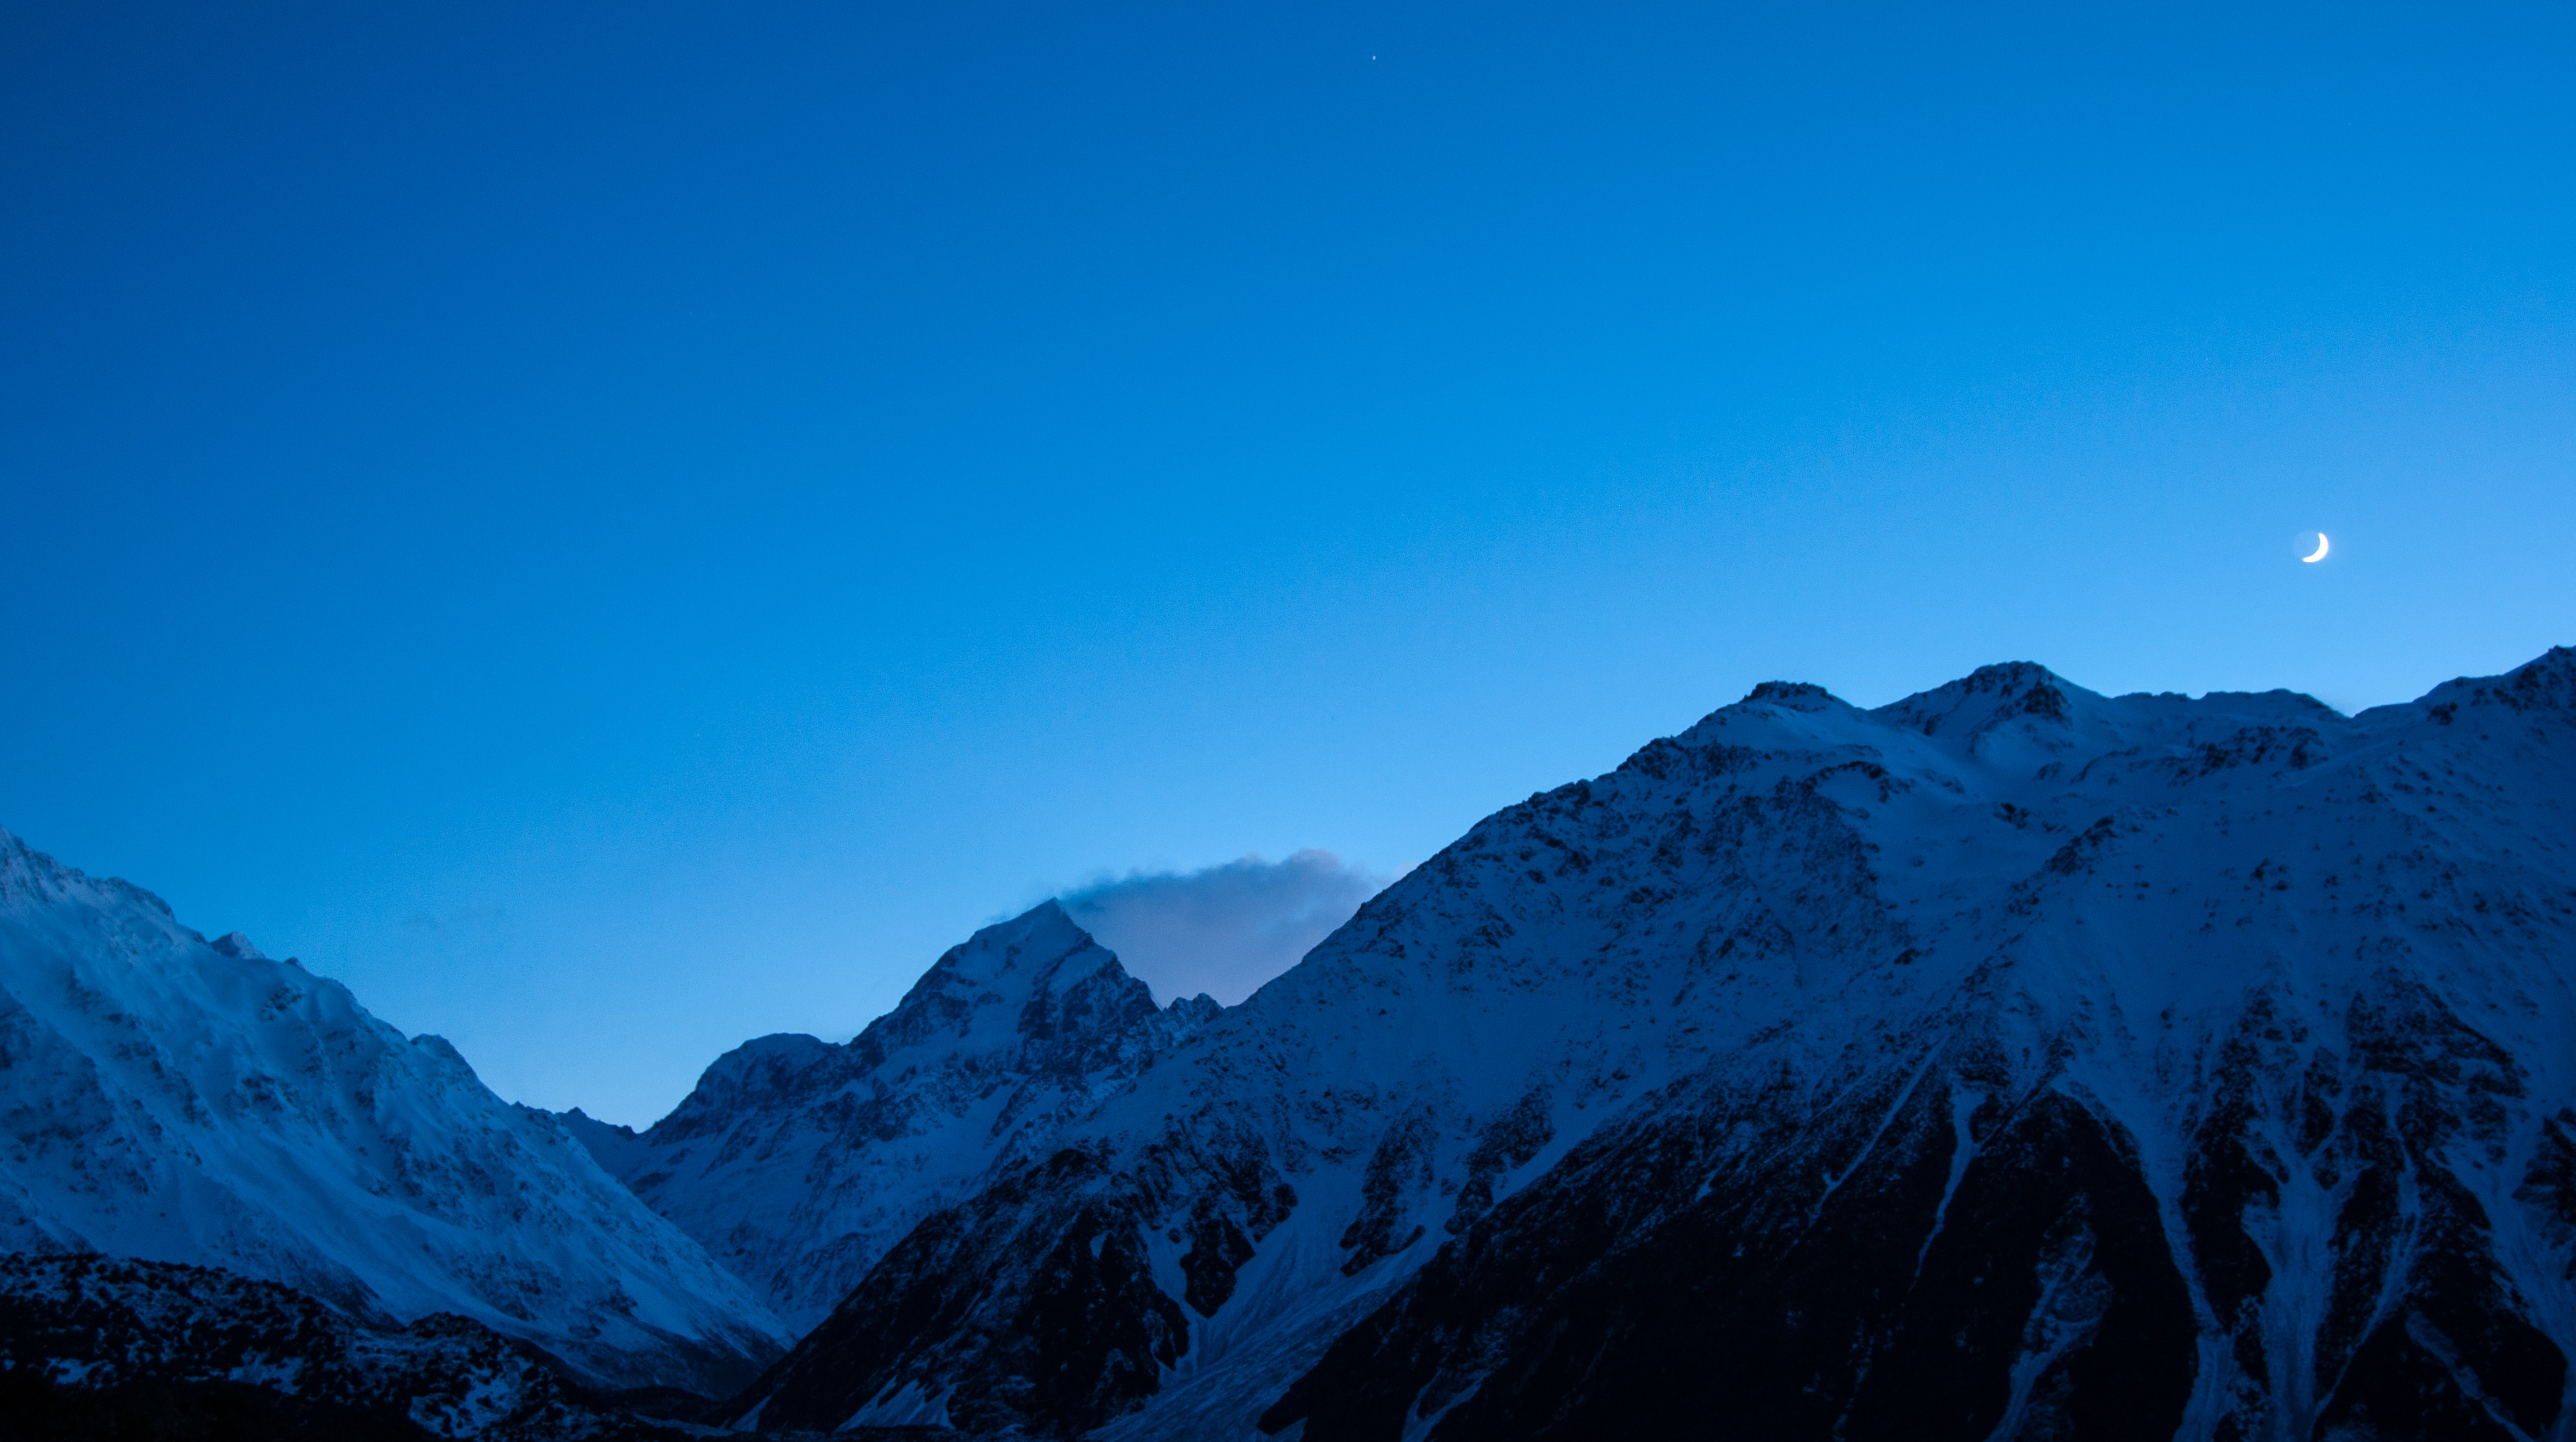 snow-capped mountain under blue sky